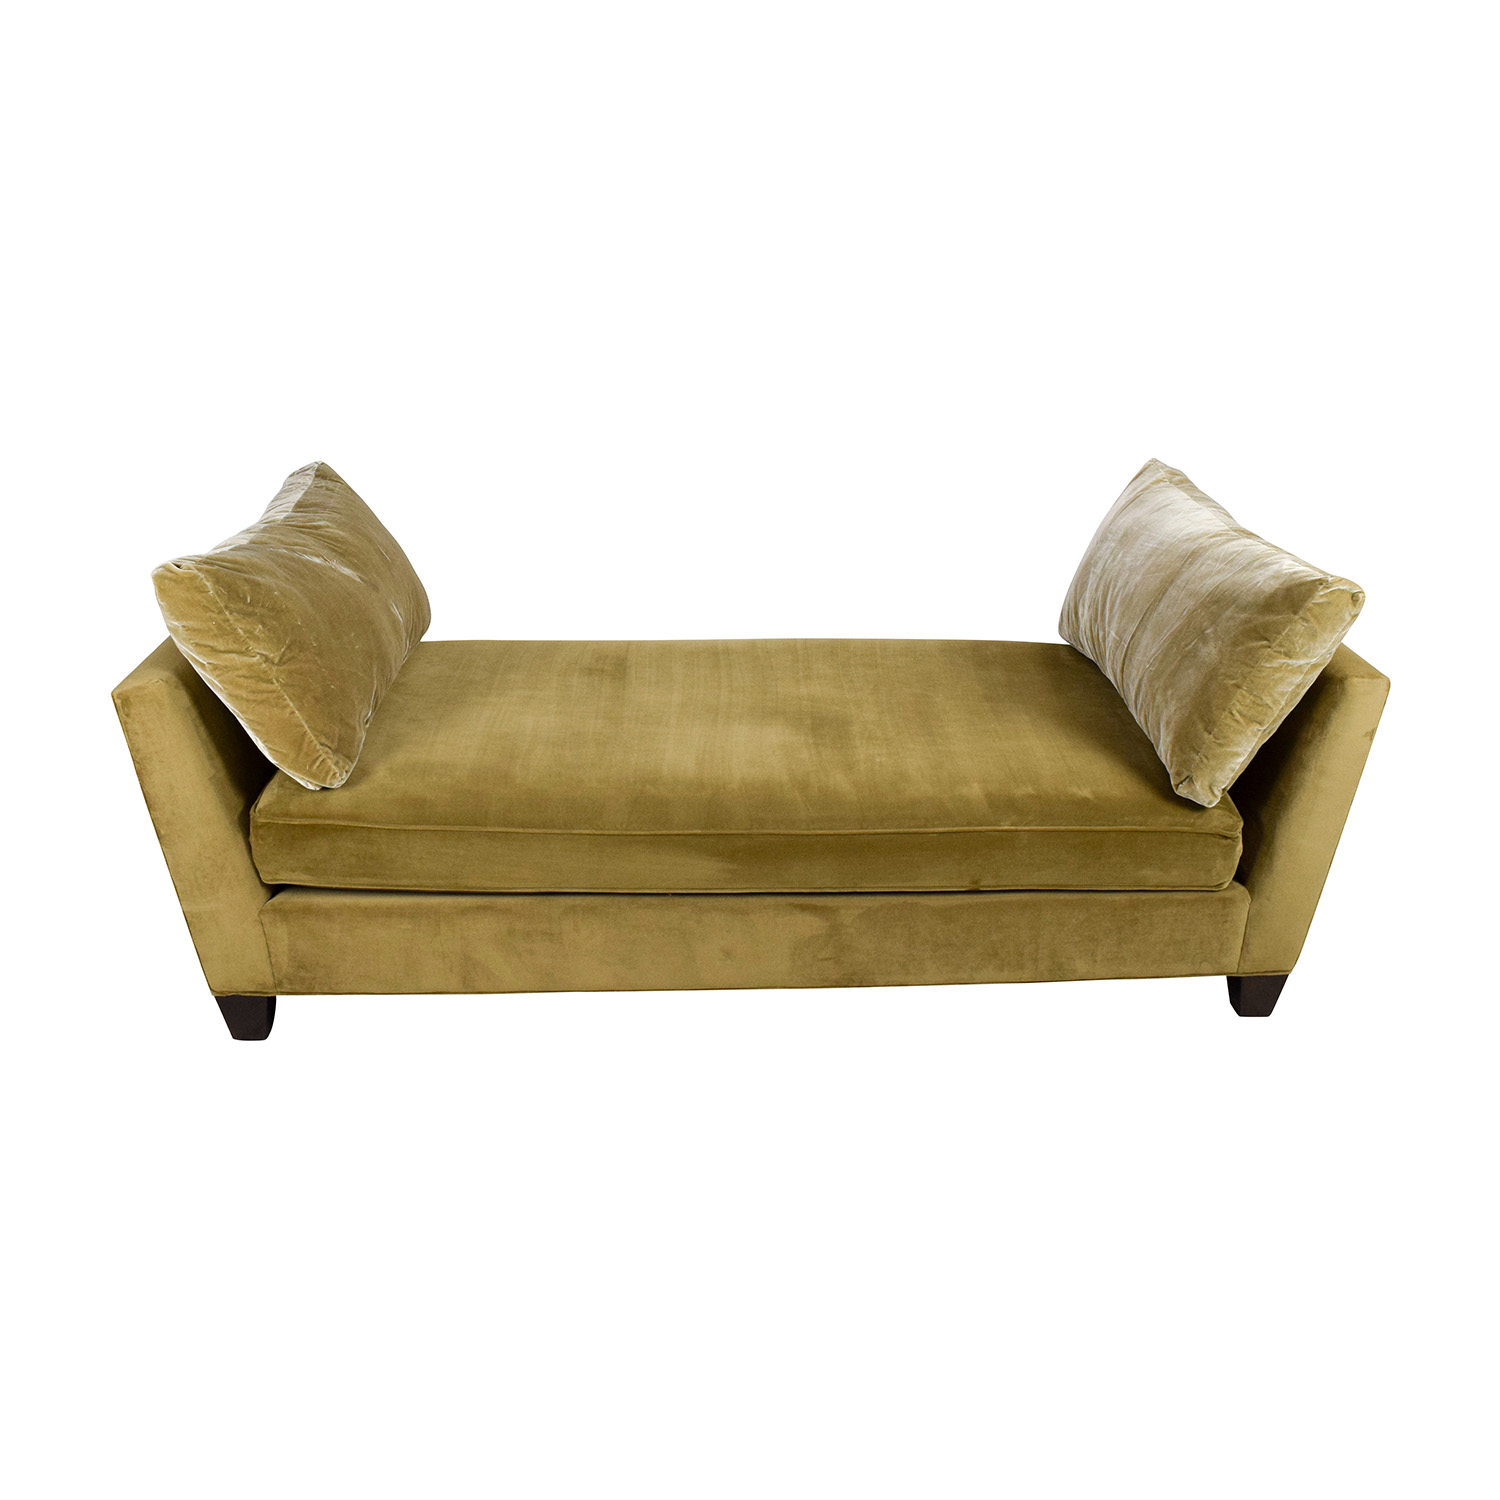 crate and barrel leather sofa bed design pictures 69 off simone daybed